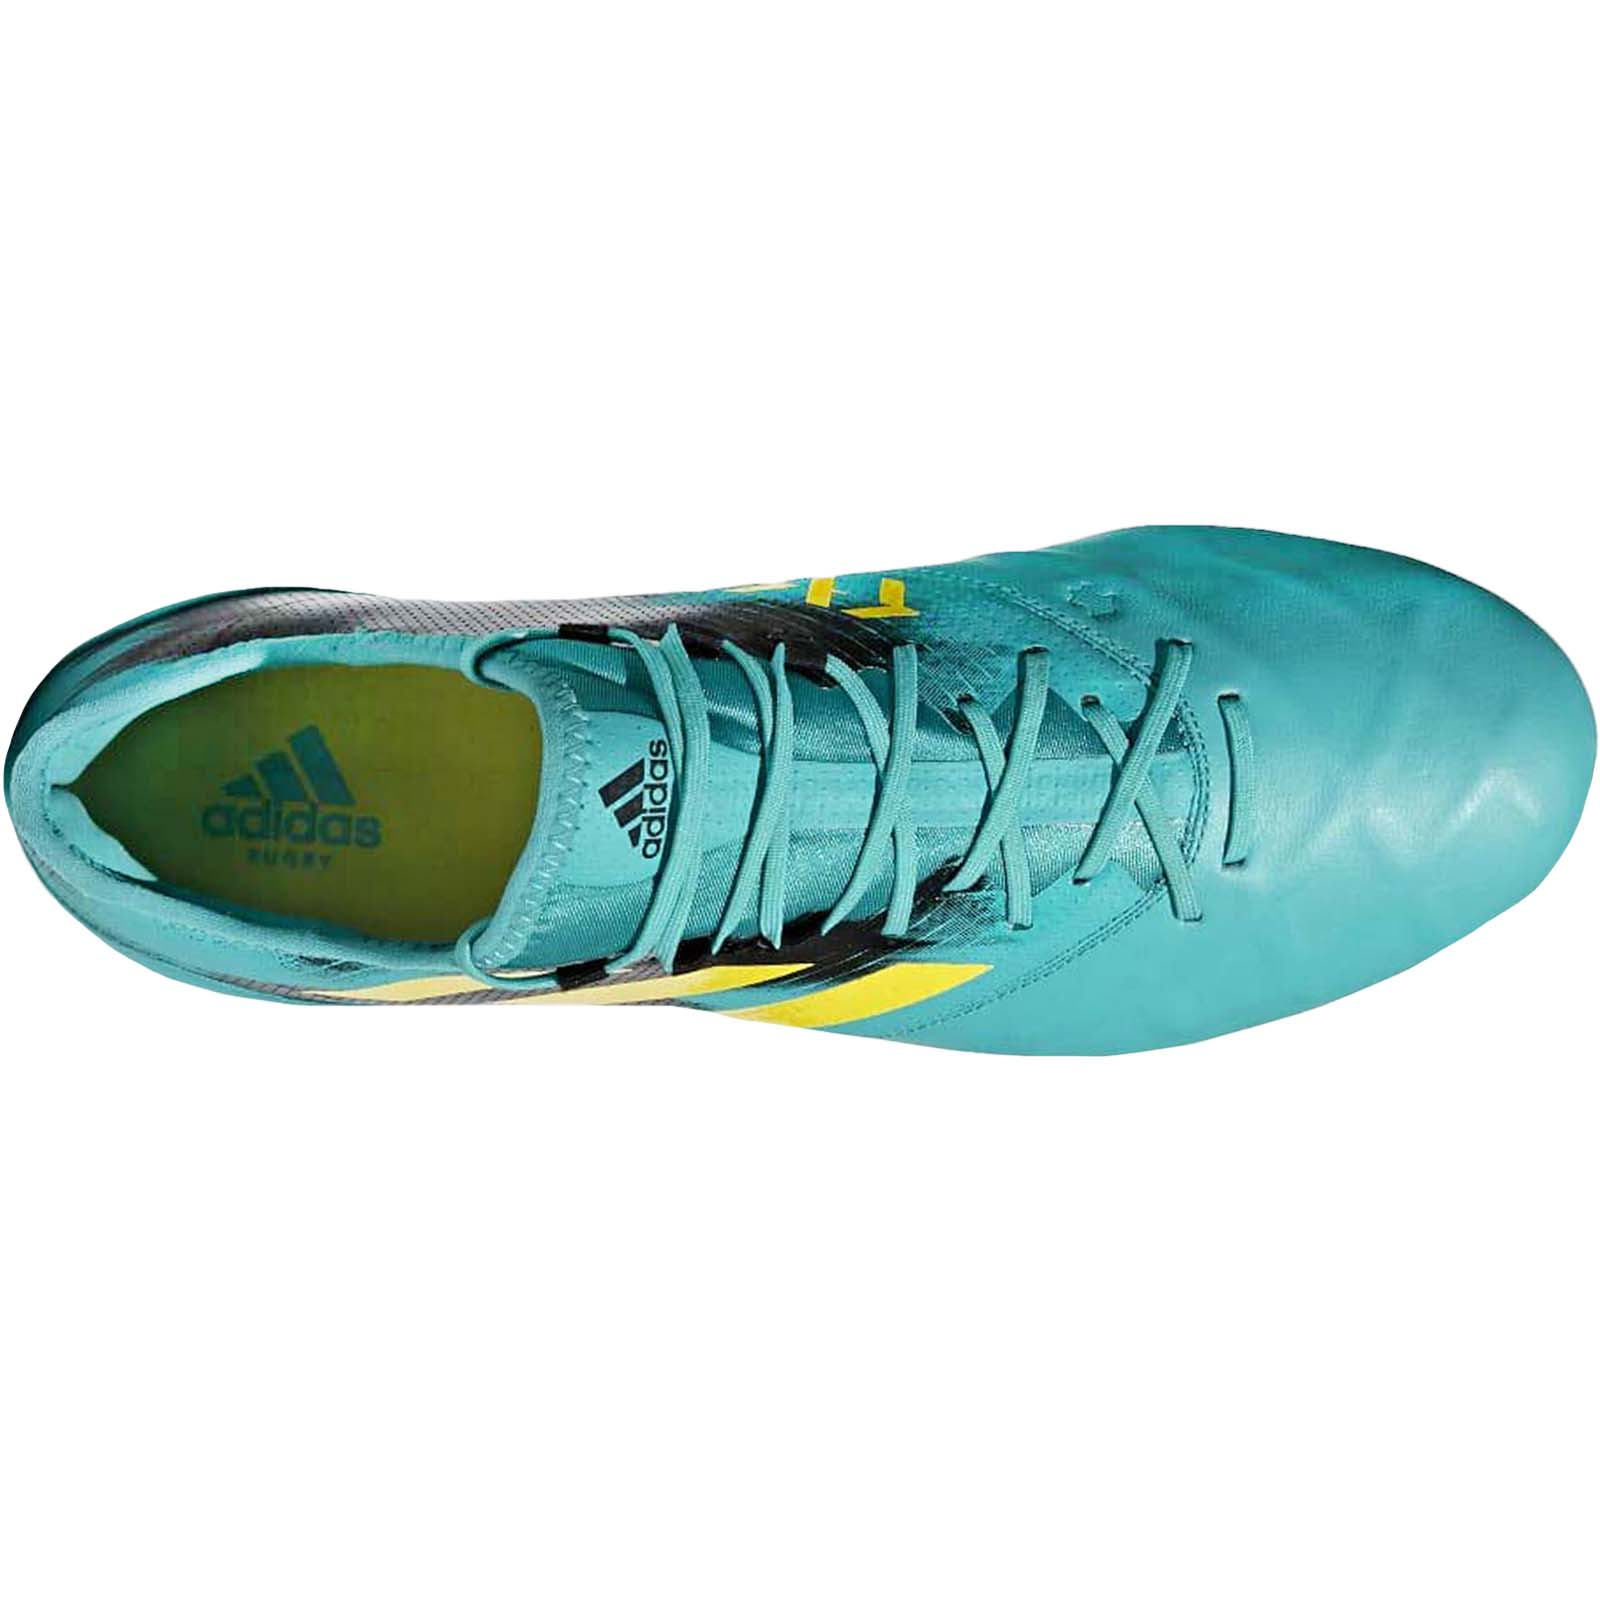 adidas-Performance-Mens-Kakari-Light-Soft-Ground-Rugby-Training-Shoes-Boots thumbnail 11